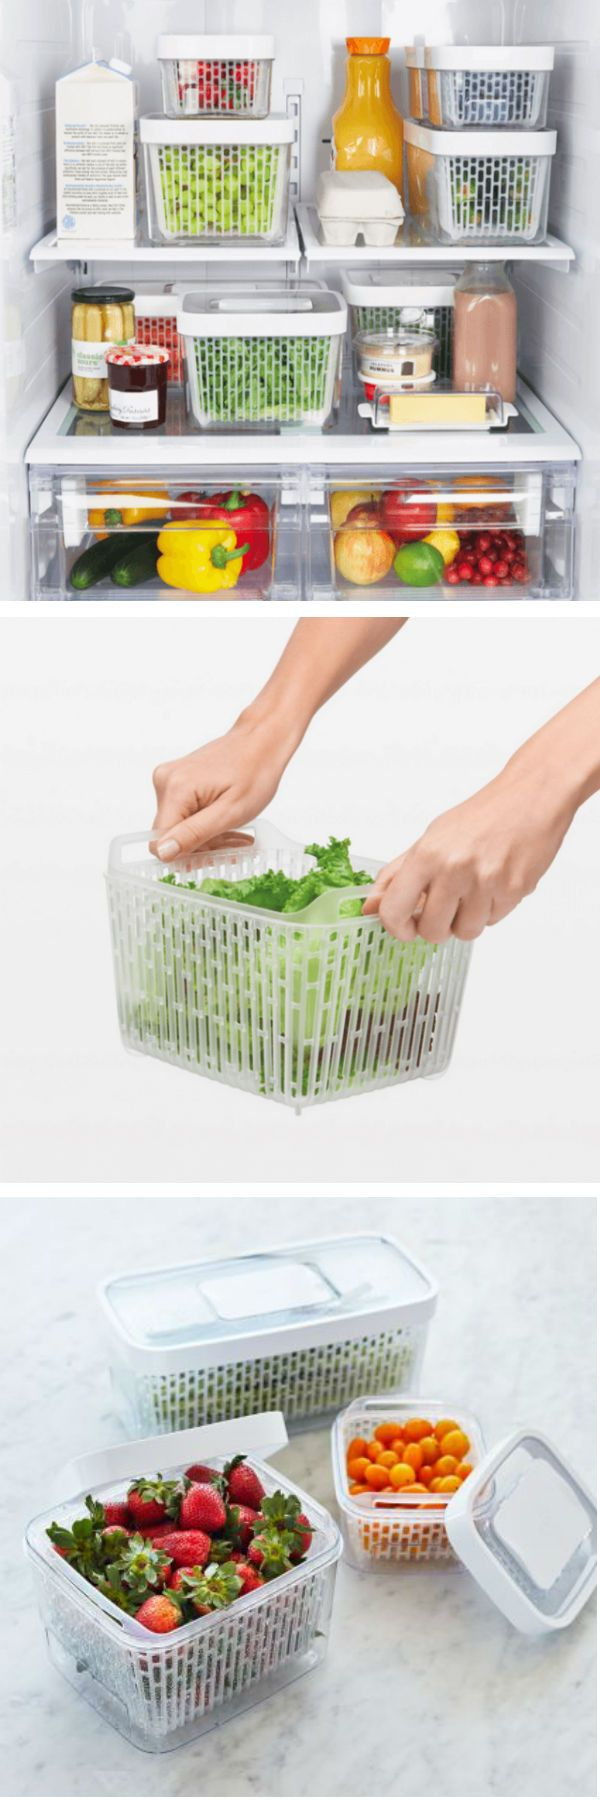 Keep your produce fresh for longer with this OXO Good Grips GreenSaver!